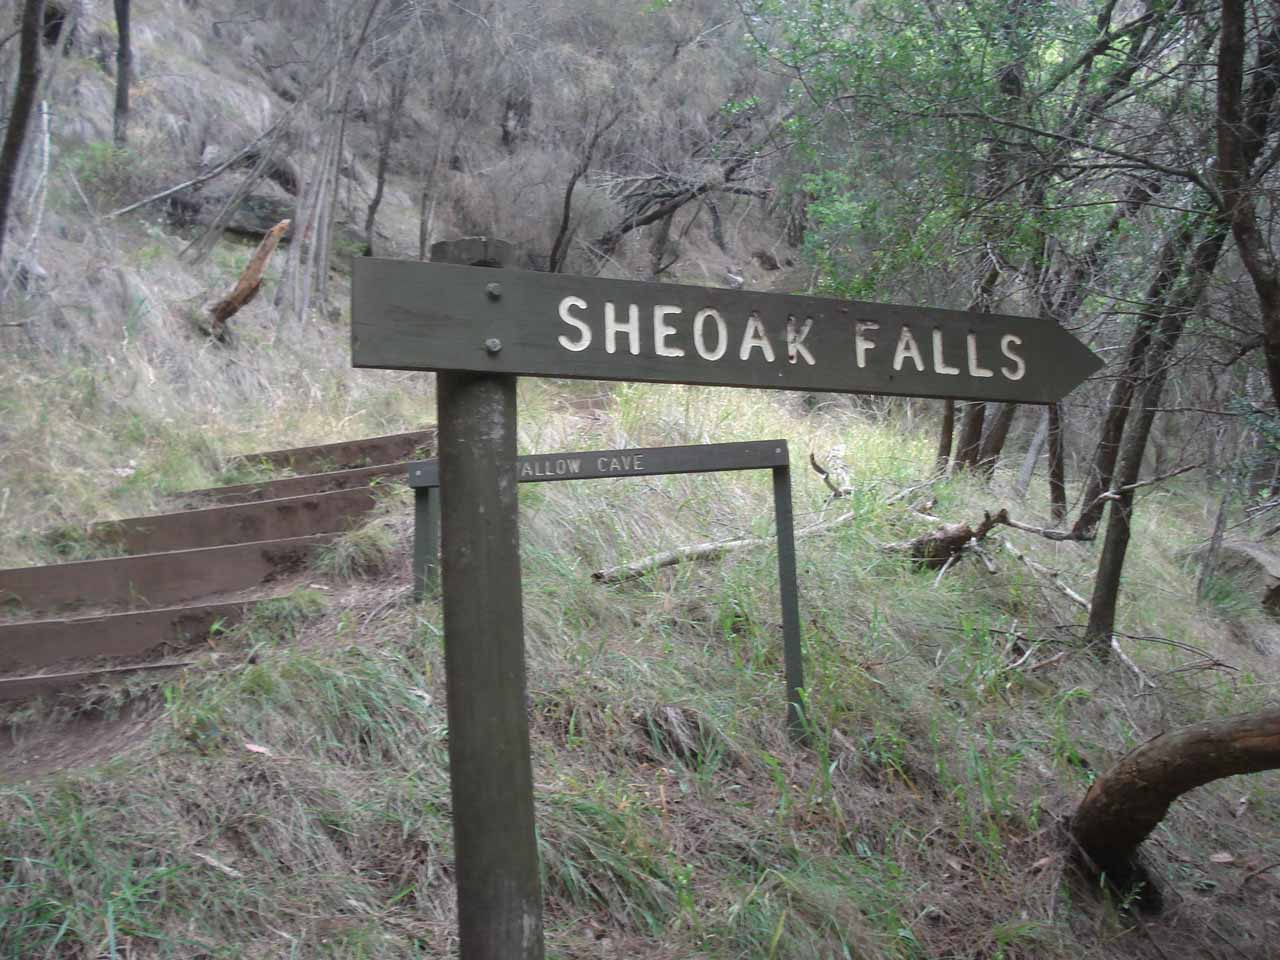 Going up the steps for the Sheoak Falls Track